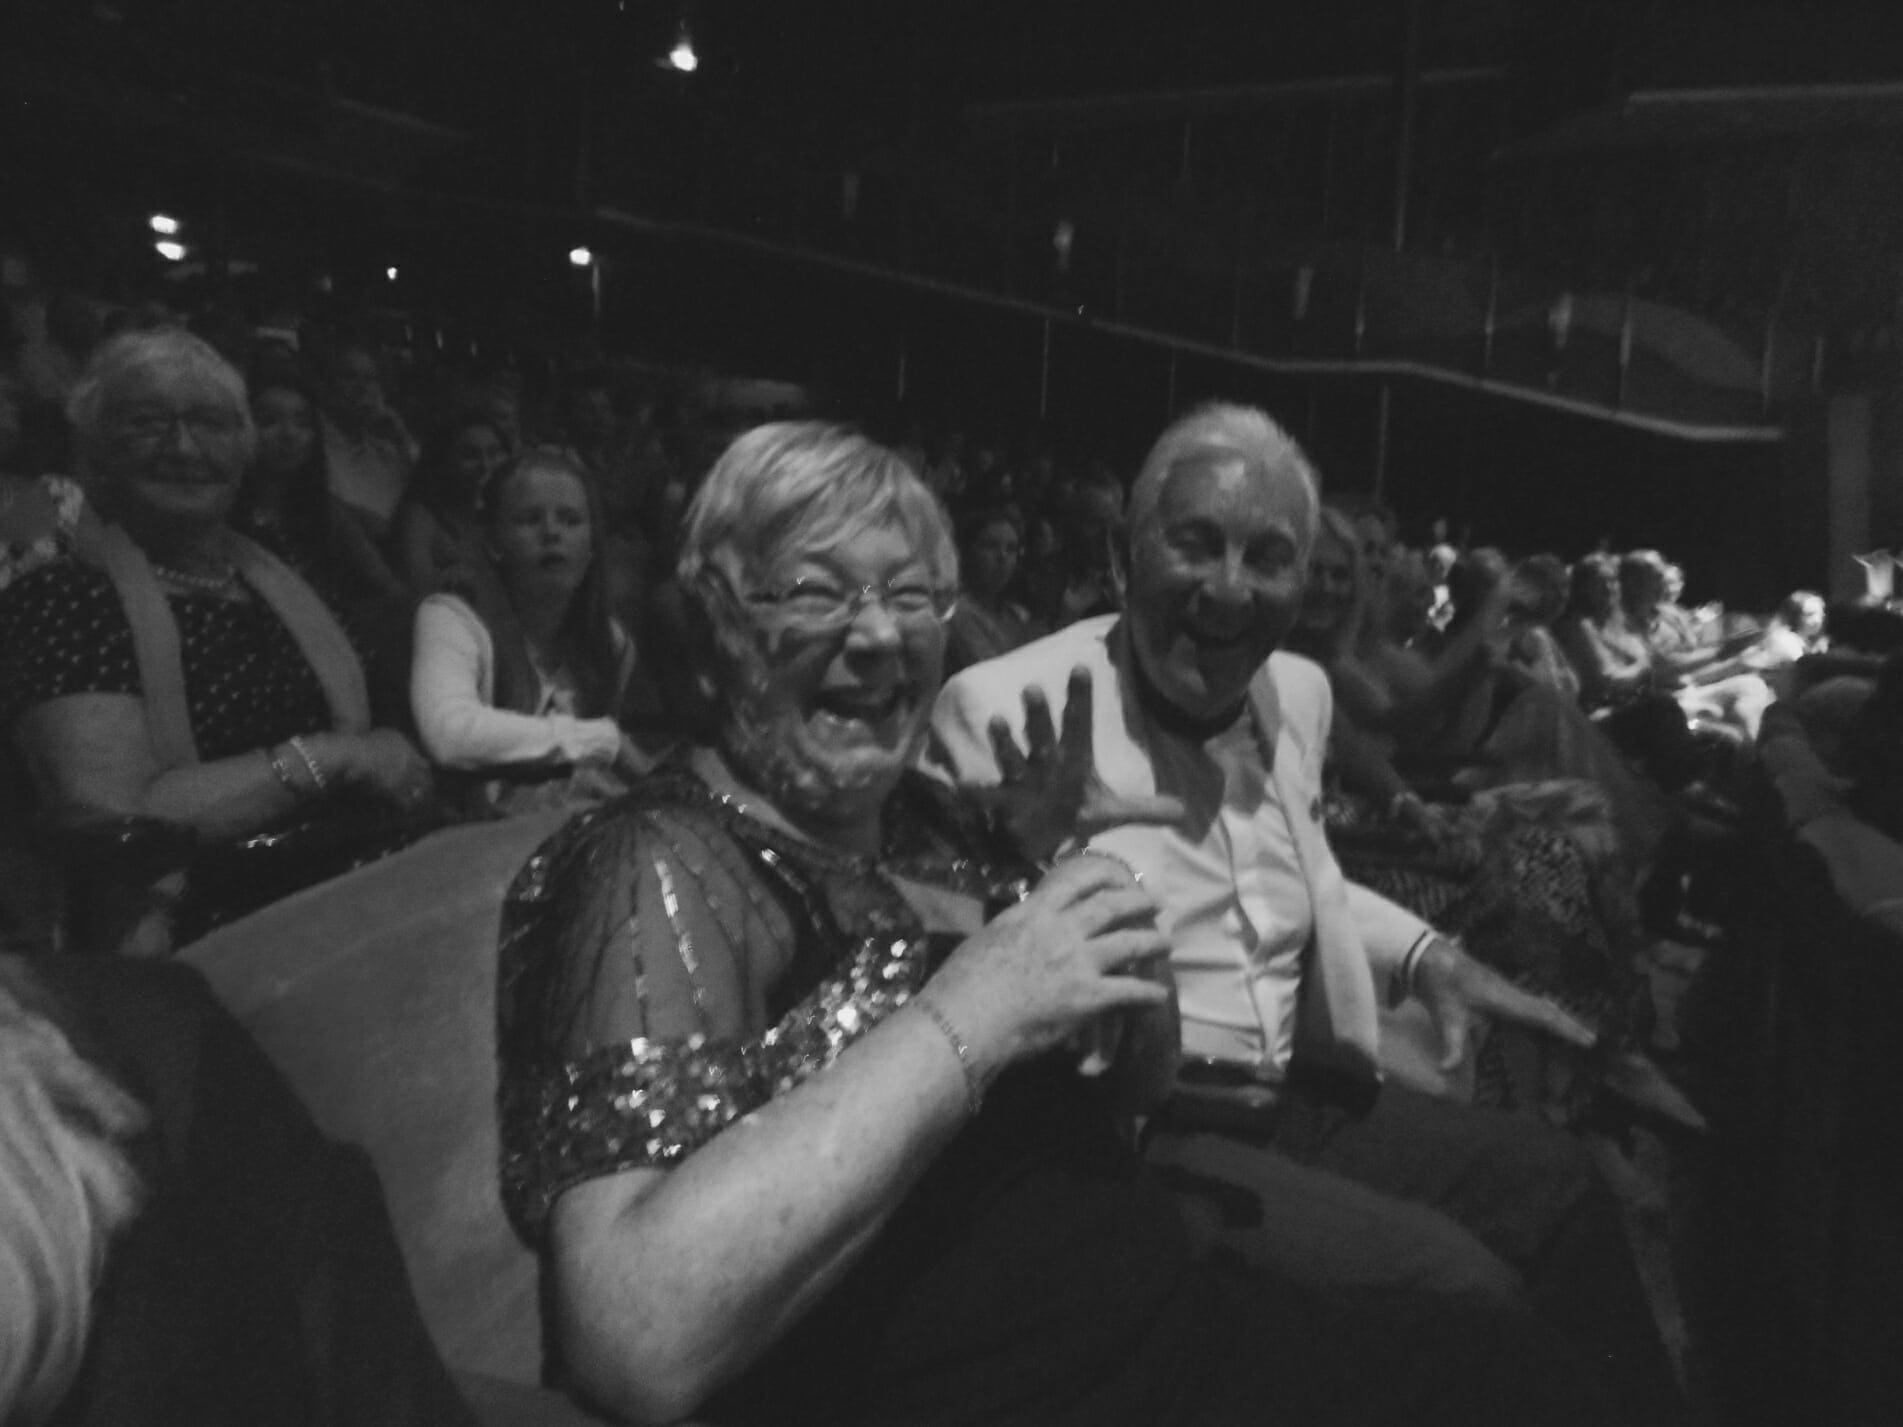 Audience at the Coral Theatre, 60s show,